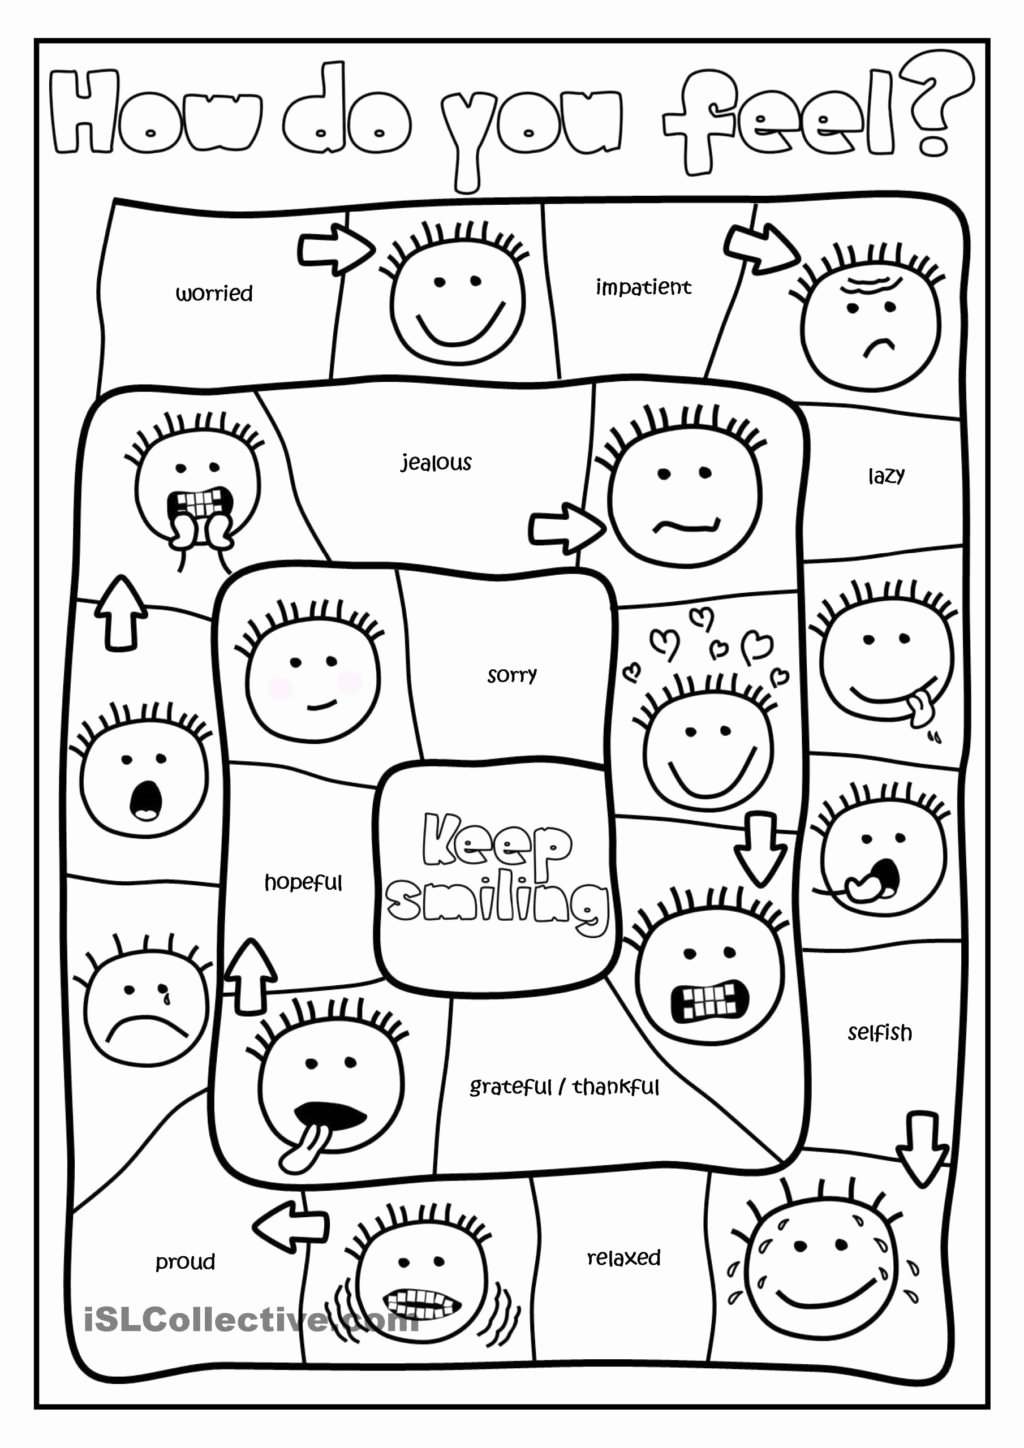 All About Me Printable Worksheets for Preschoolers Unique Worksheet Free Printable Sheets for Preschool Car Coloring